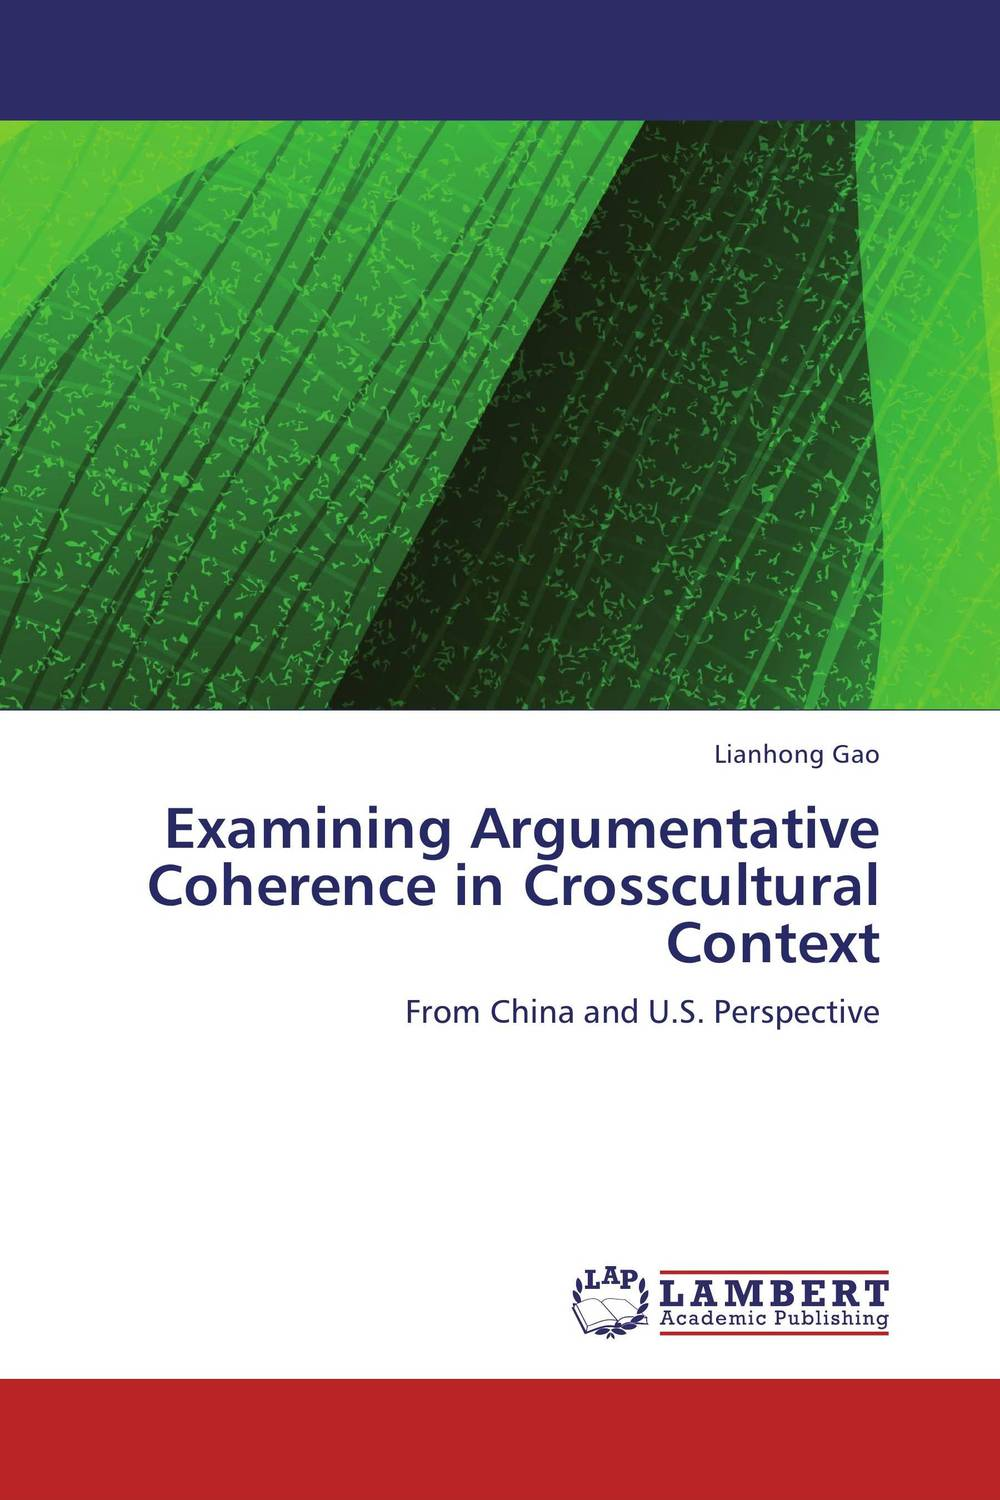 Examining Argumentative Coherence in Crosscultural Context